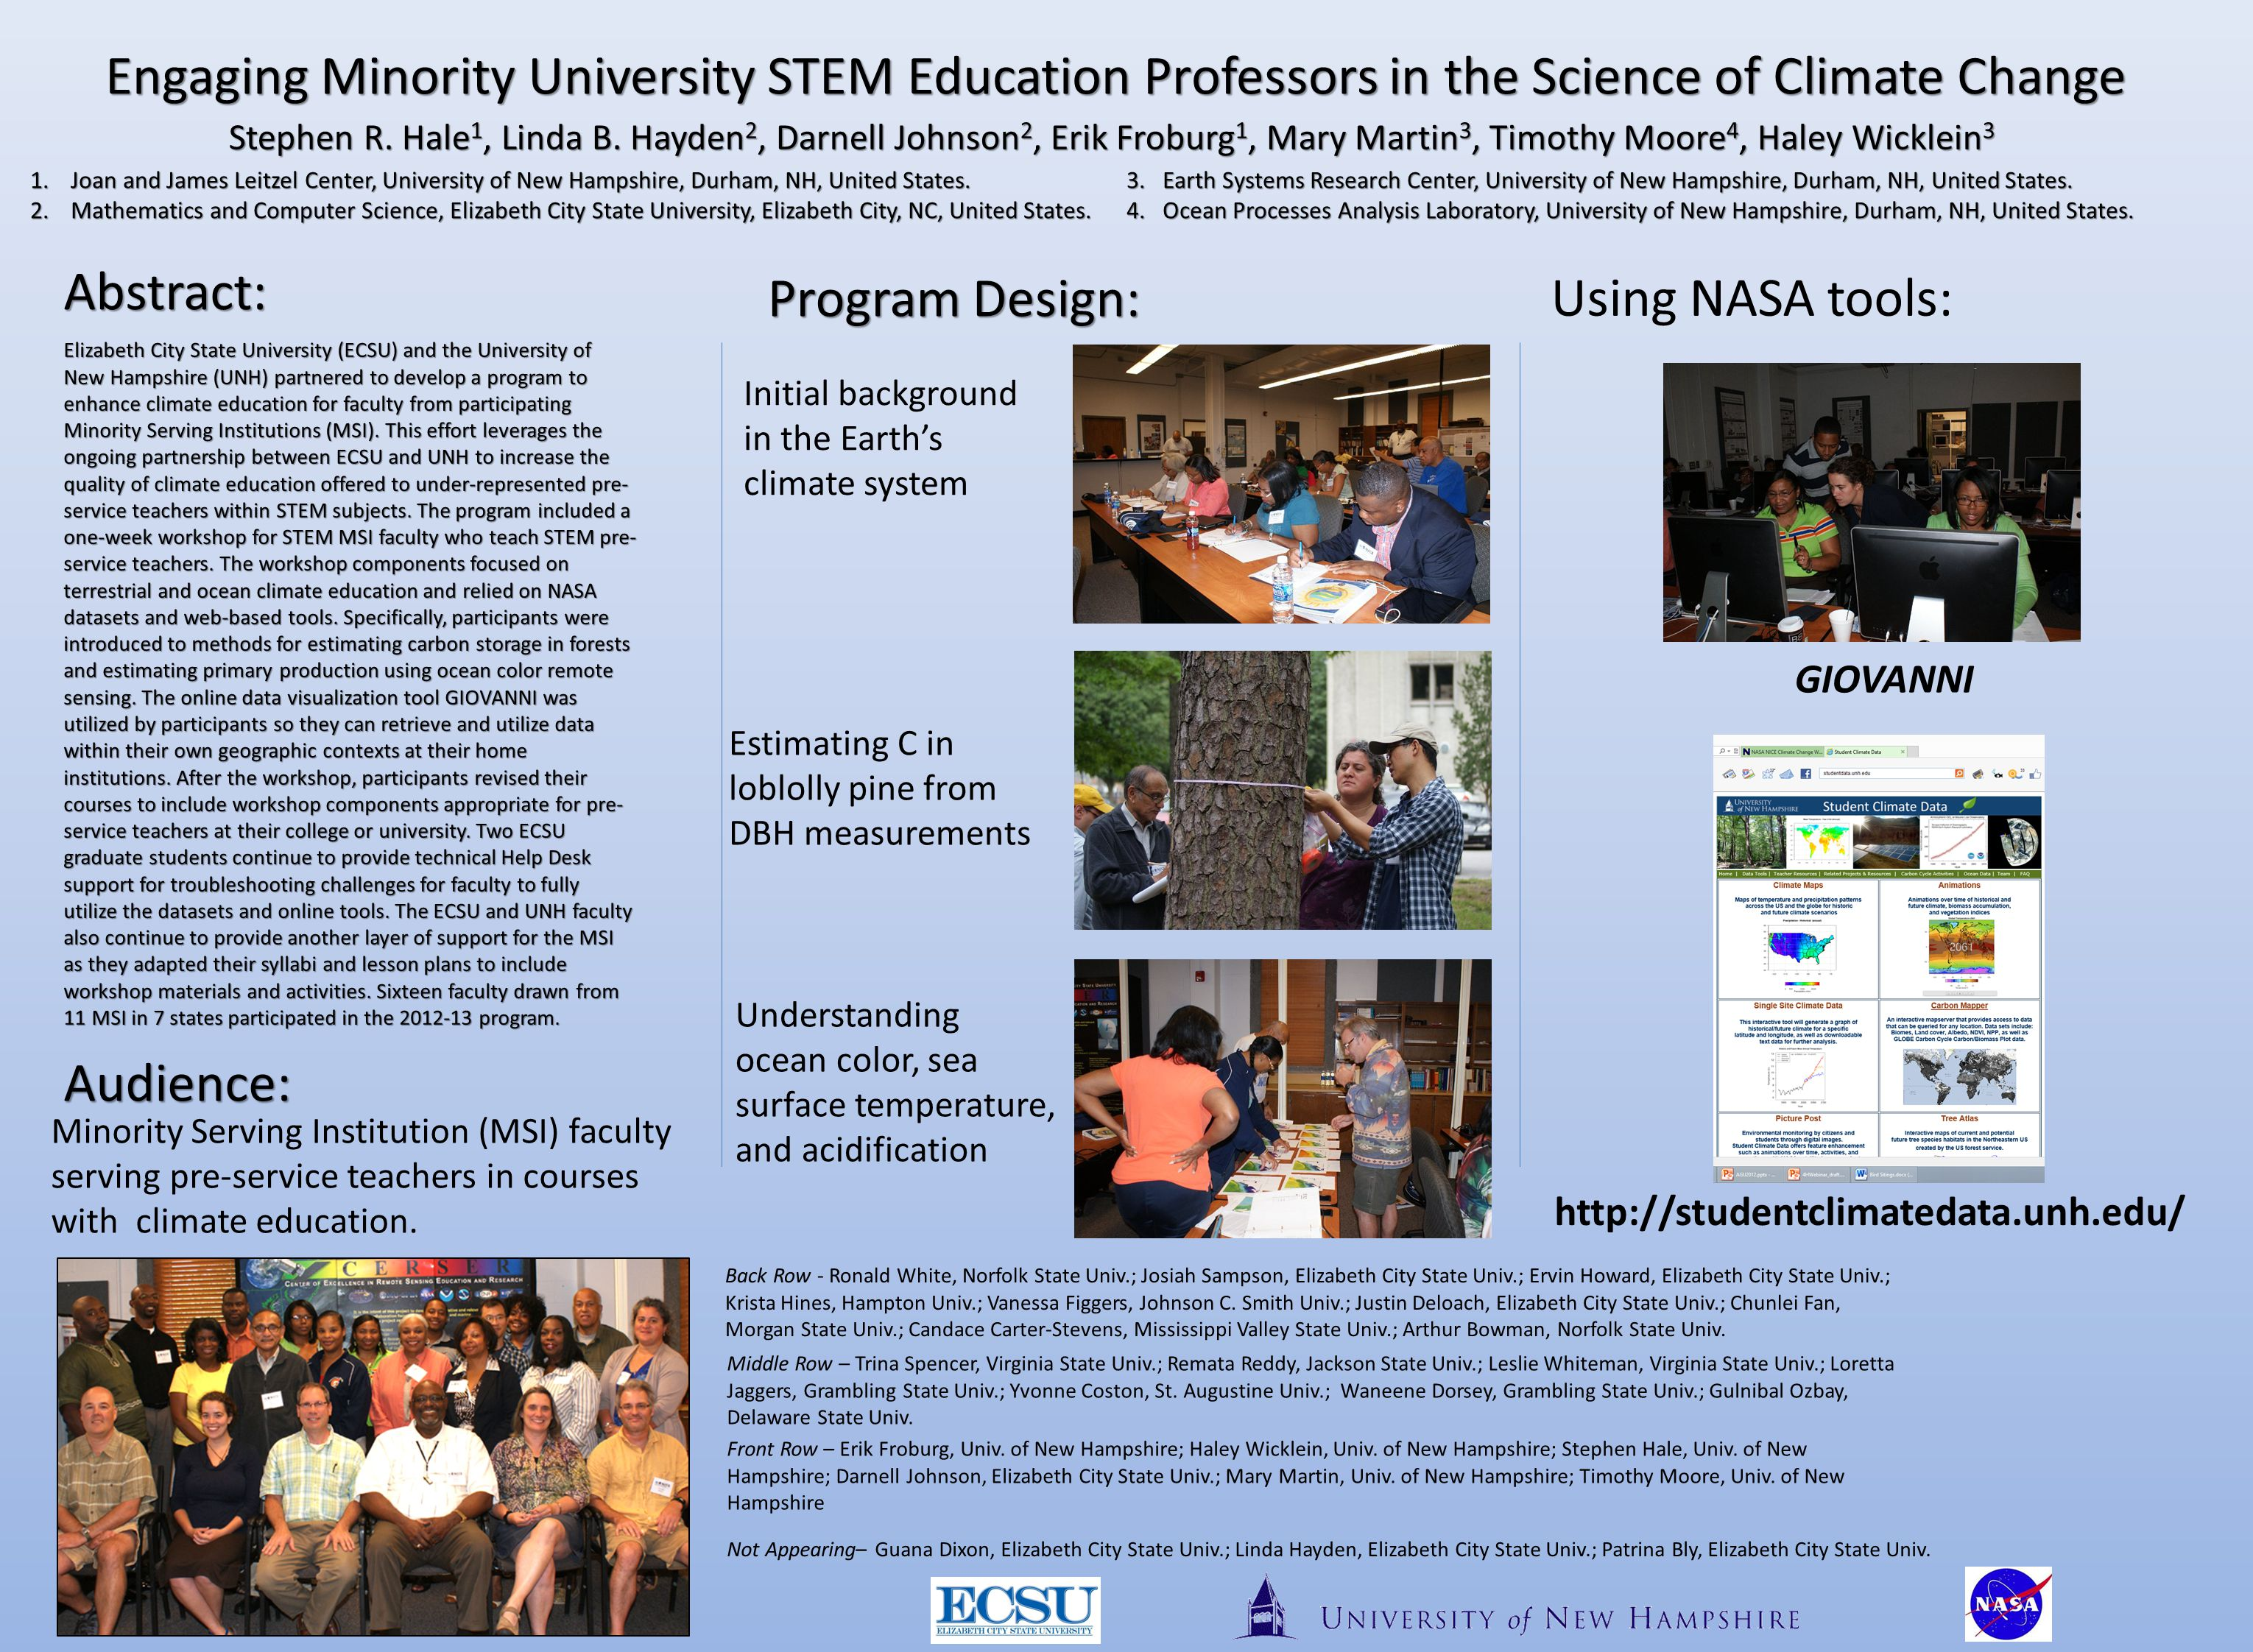 Elizabeth City State University (ECSU) and the University of New Hampshire (UNH) partnered to develop a program to enhance climate education for faculty from participating Minority Serving Institutions (MSI).